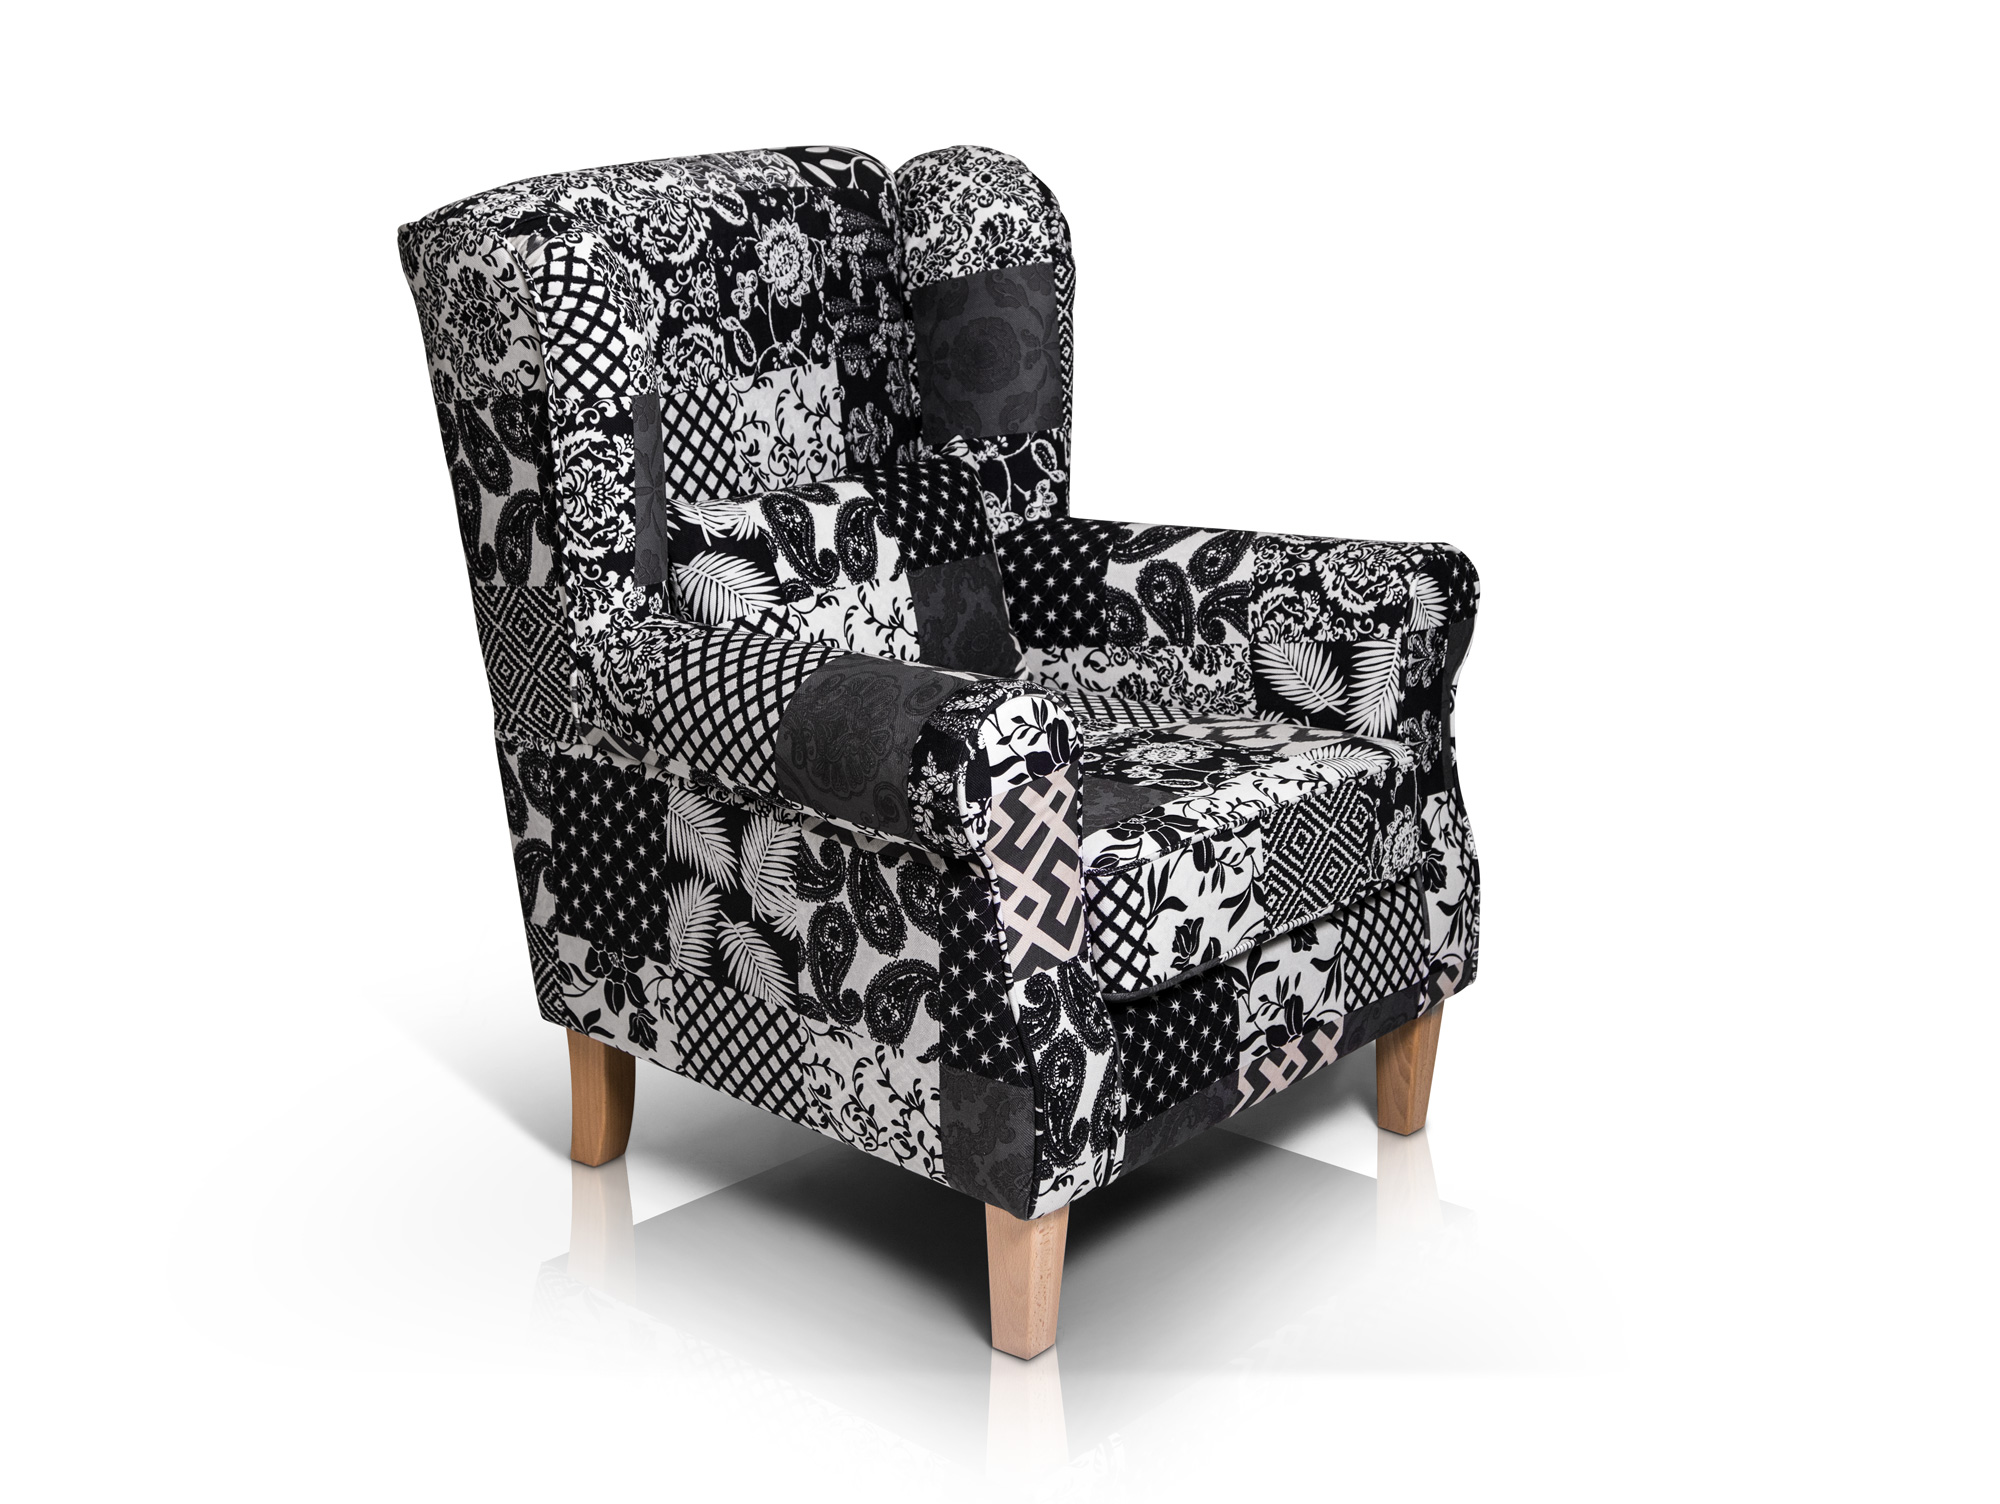 Ohrensessel Patchwork Mit Hocker Willy Ohrensessel 43 Hocker Patchwork Schwarz